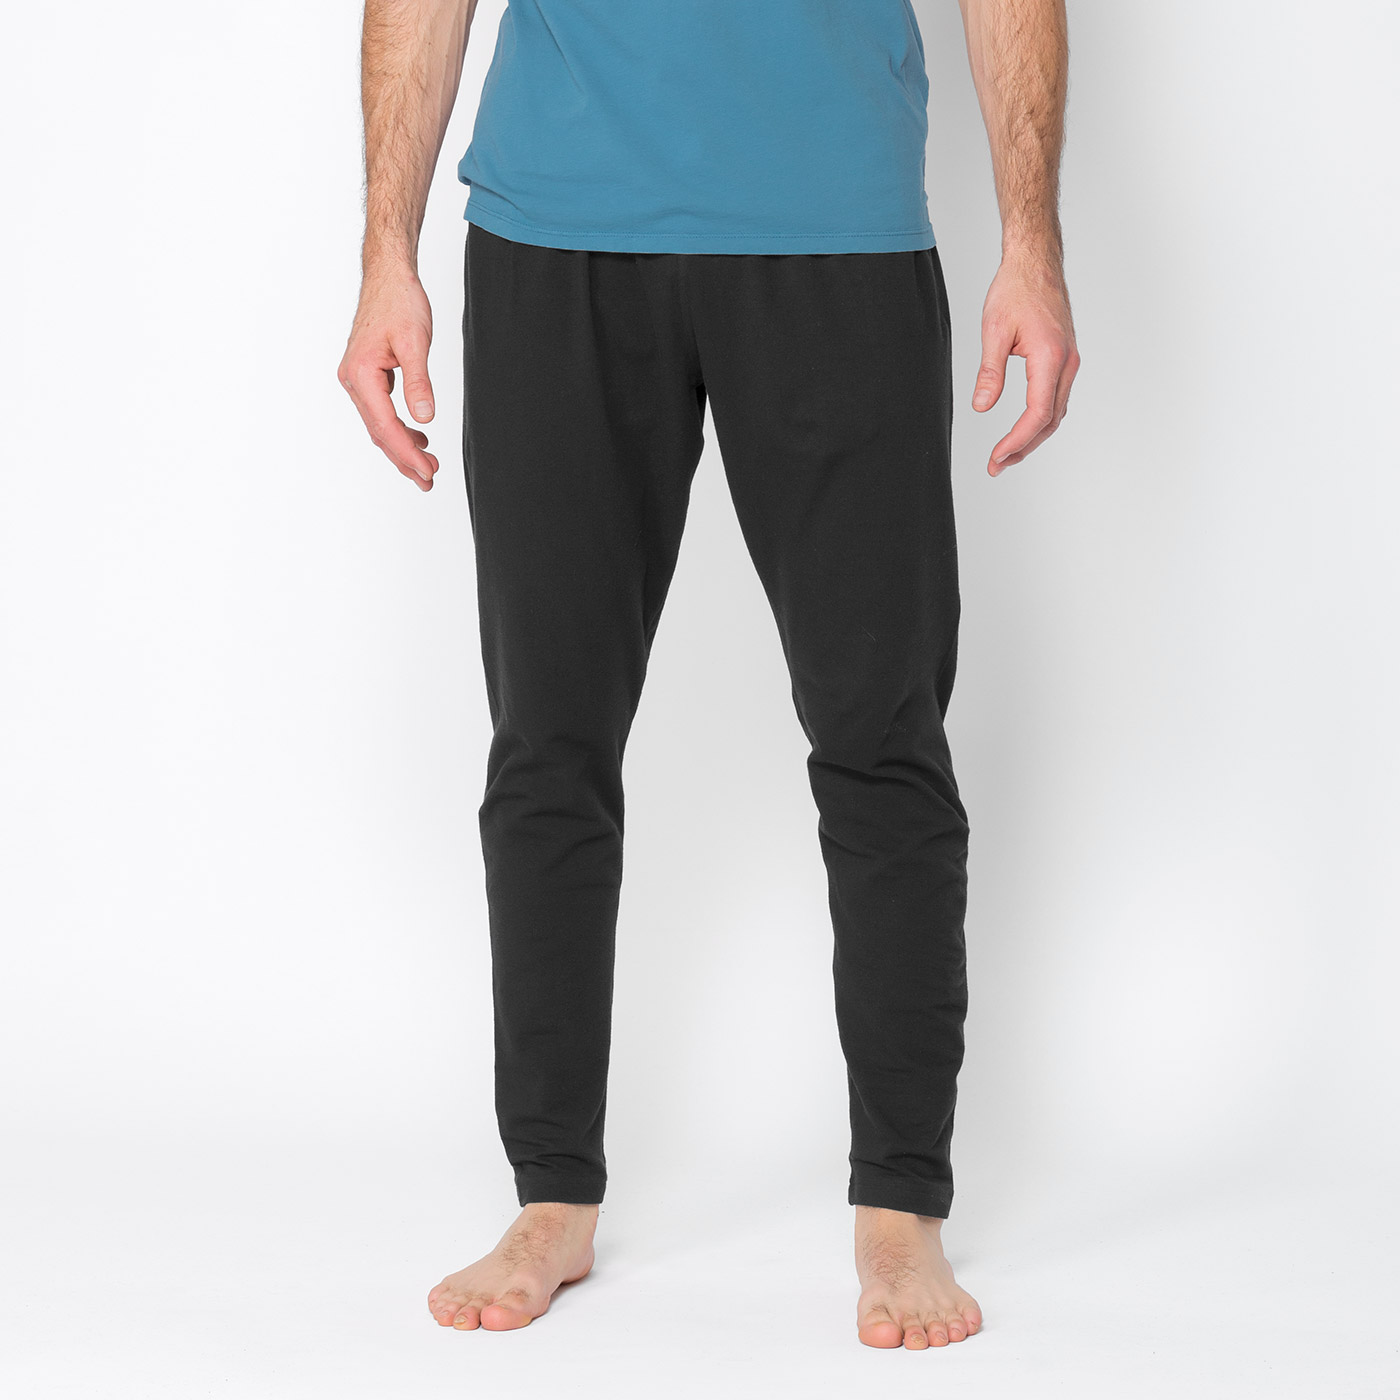 Prana Setu Yoga Pant Mens Apparel at Vickerey